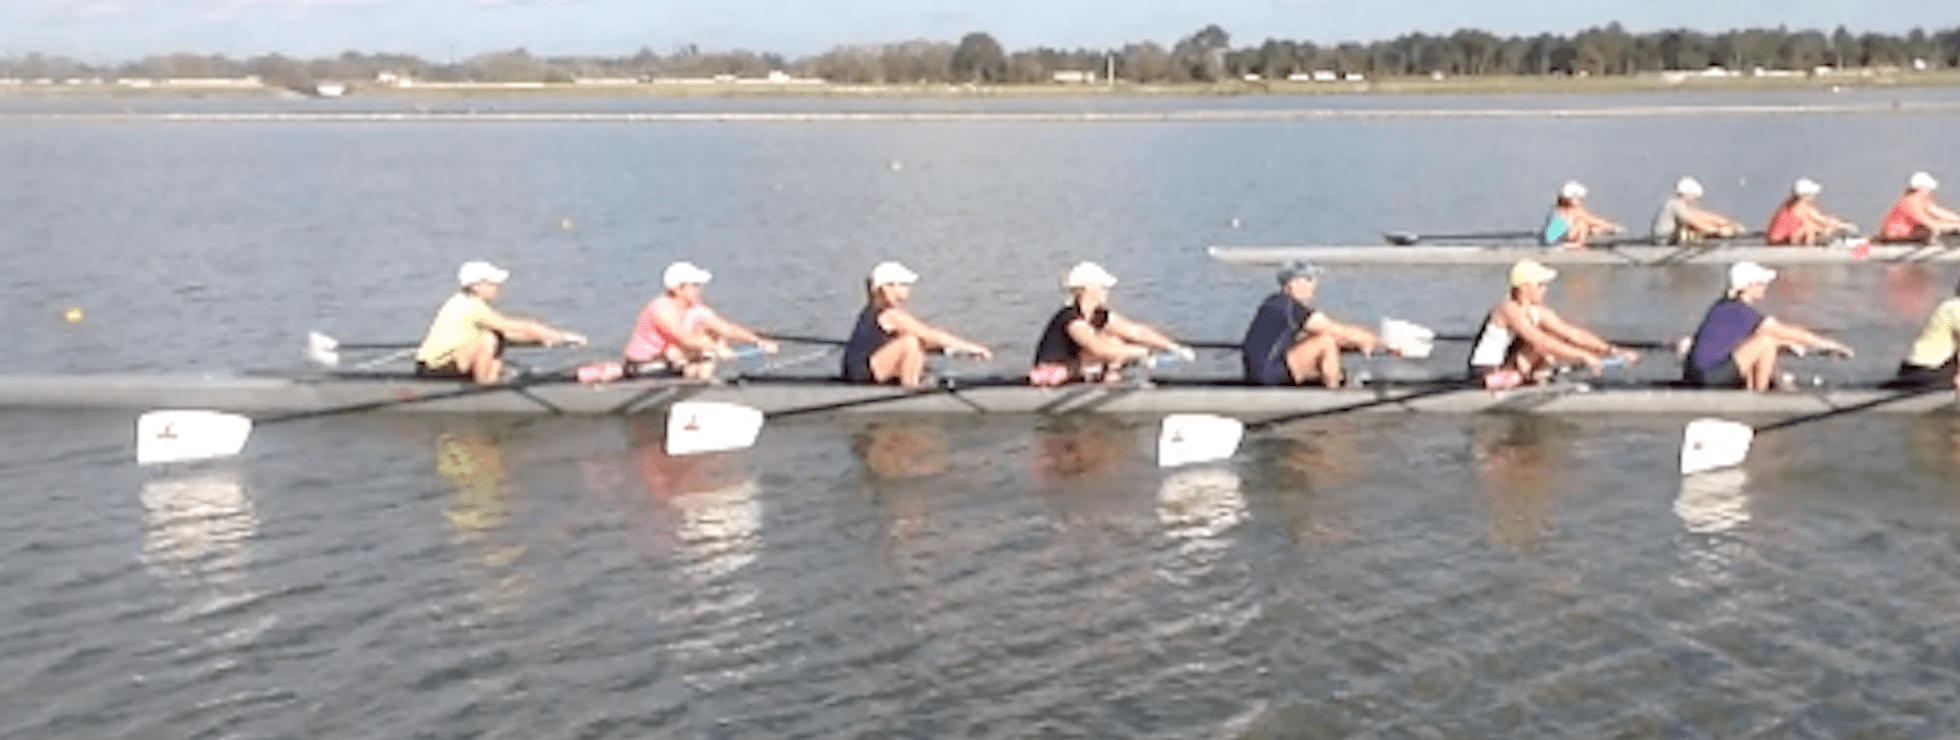 rowing camps, faster masters rowing, masters rowing crew,